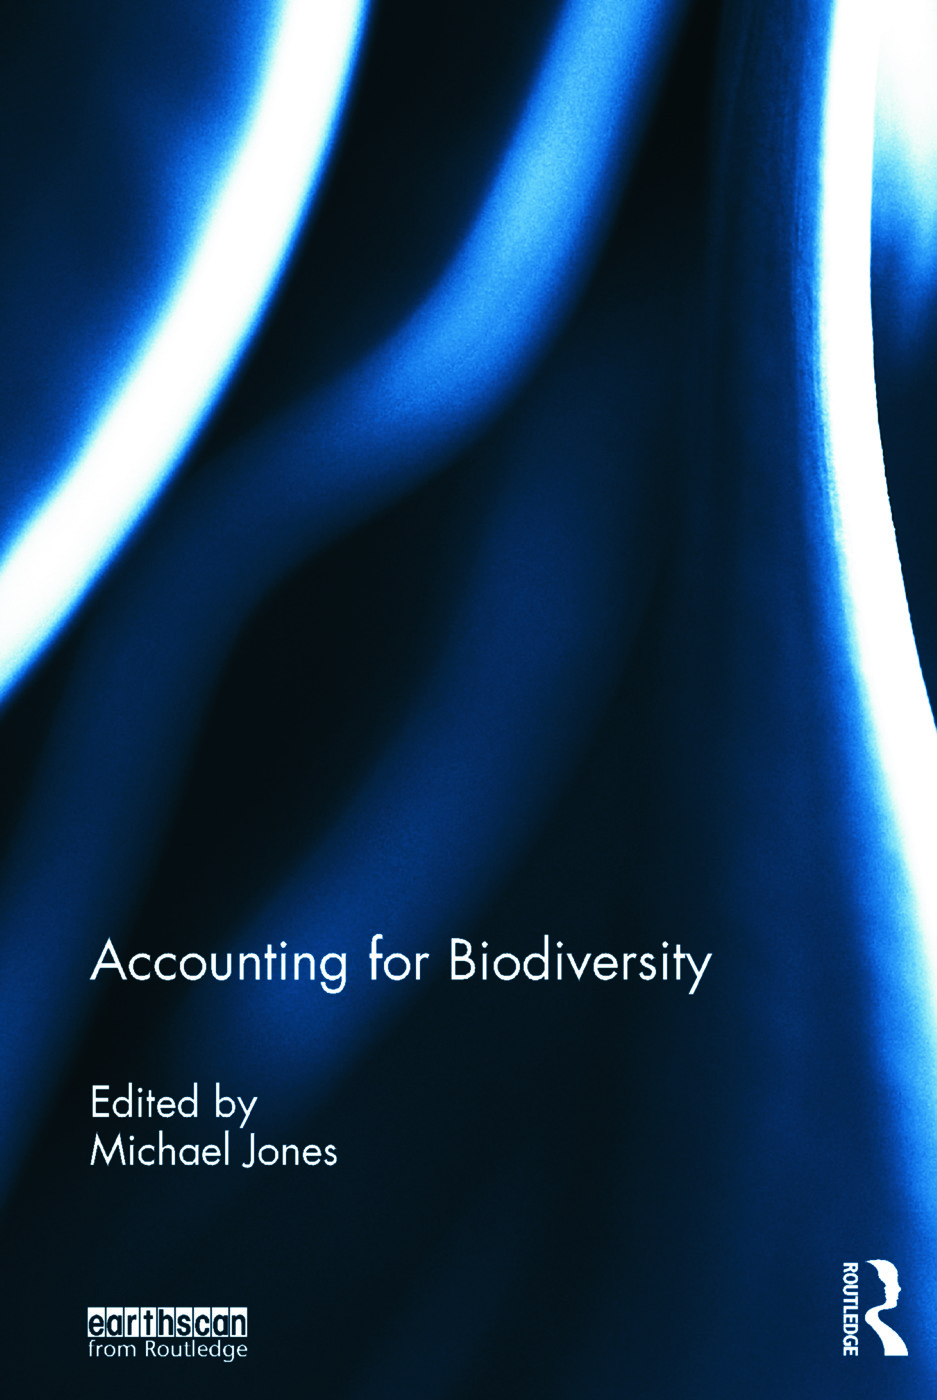 Accounting for biodiversity: rationale and overview